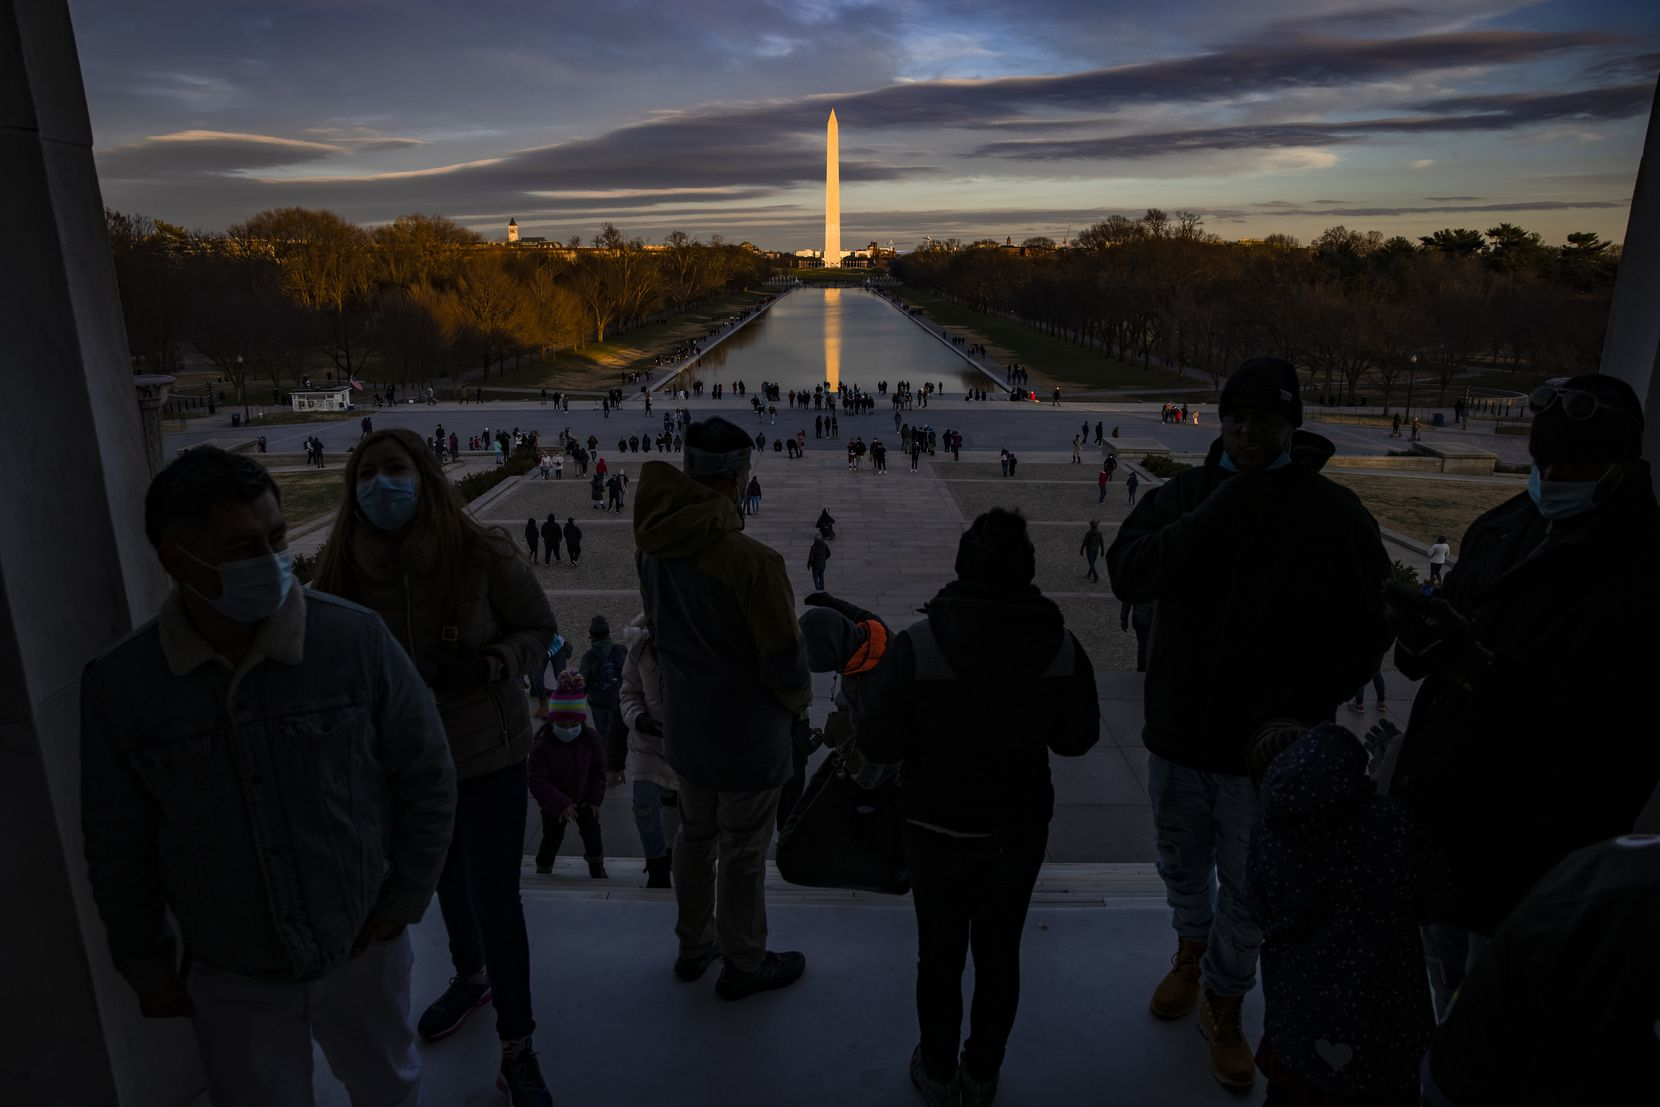 Visitors look out from the Lincoln Memorial across the Reflecting Pool toward the Washington Monument as the sun sets on Saturday, Dec. 26, 2020, in Washington, D.C.